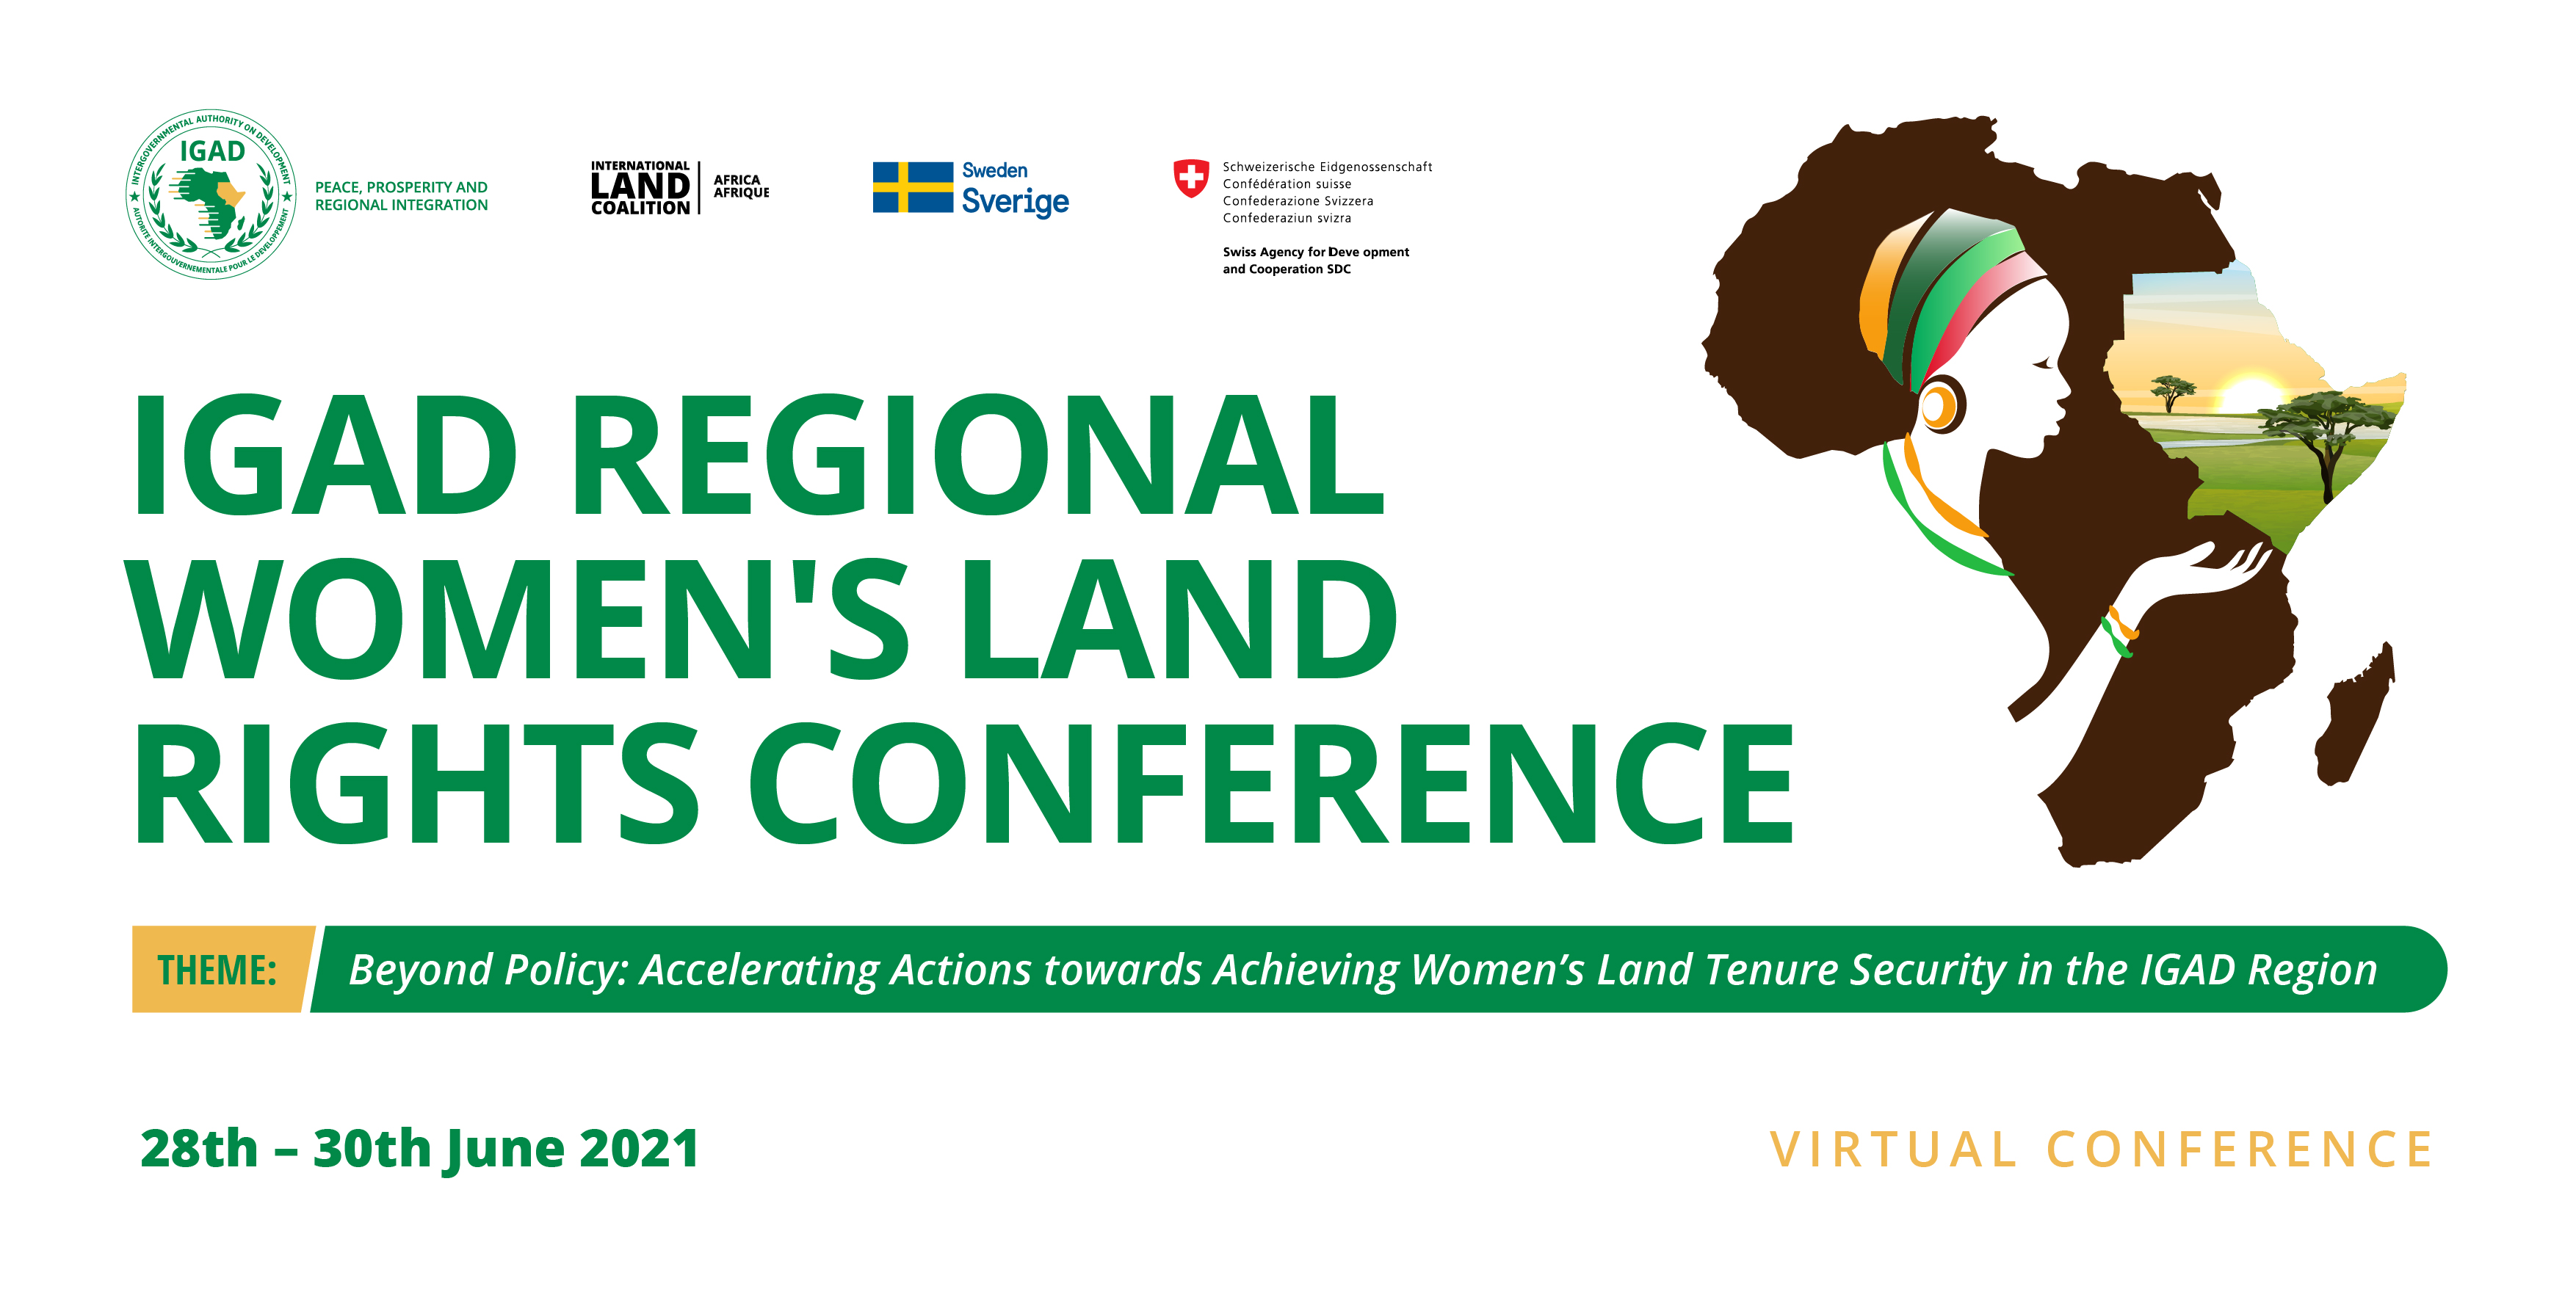 IGAD Regional Women's Land Rights Conference